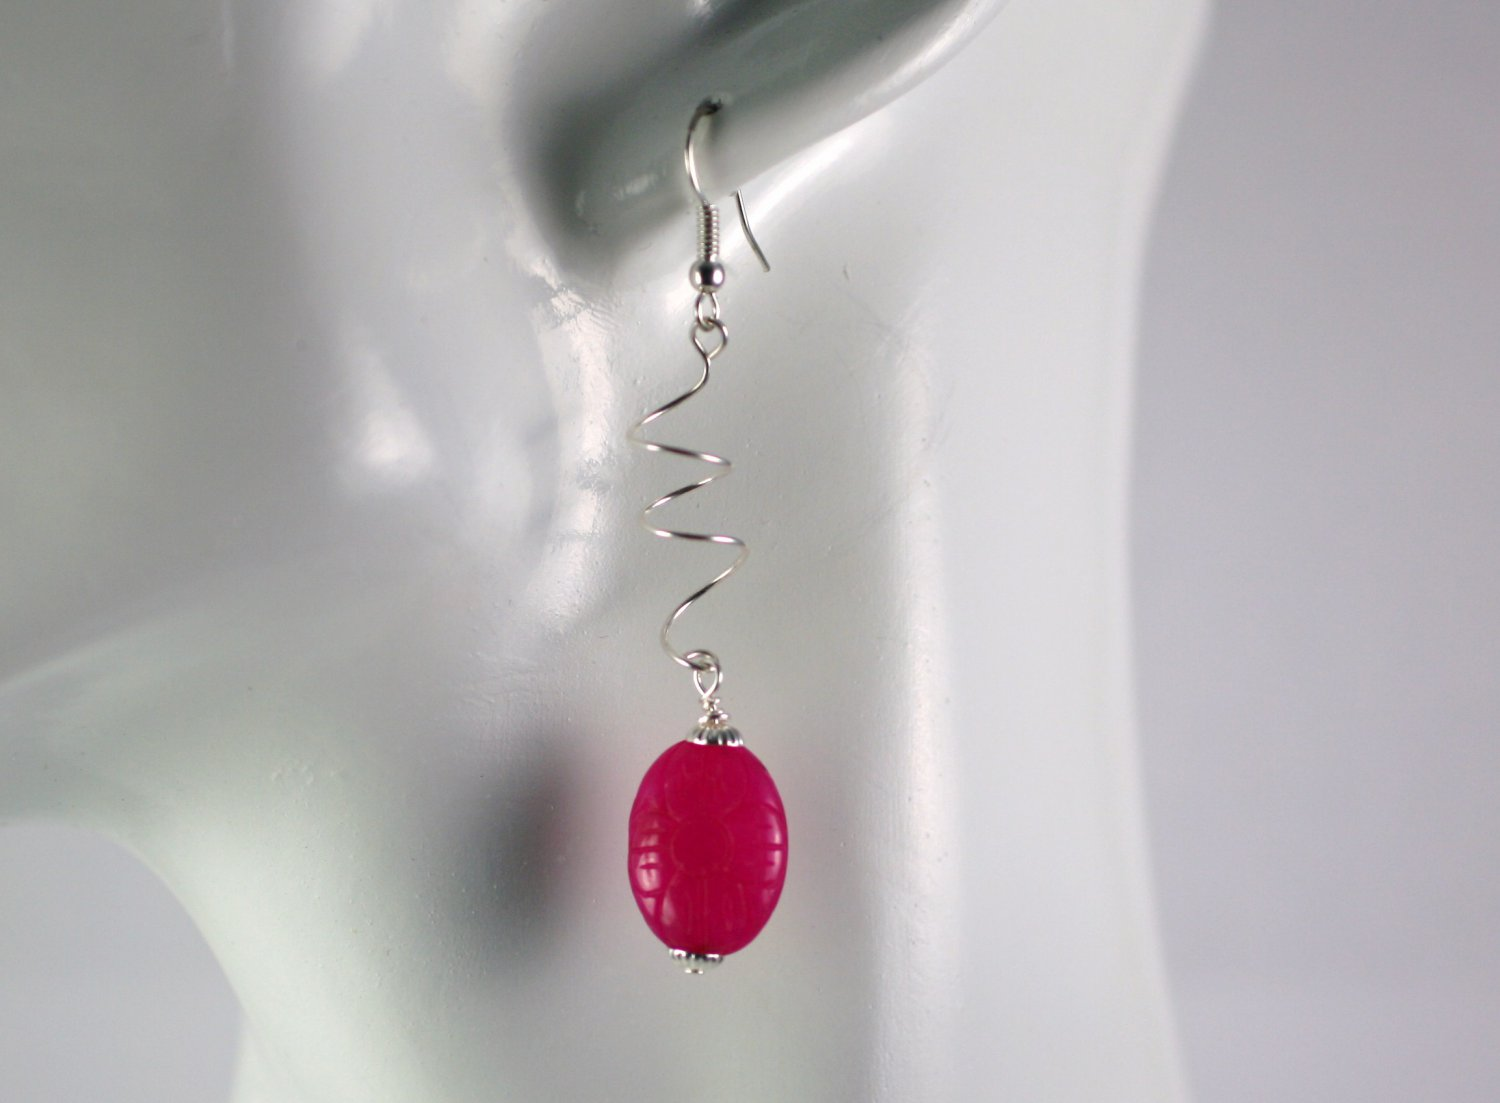 Silver Spiral Drop Dangle Earrings with  Fushia Quartz Beads Handcrafted Jewelry